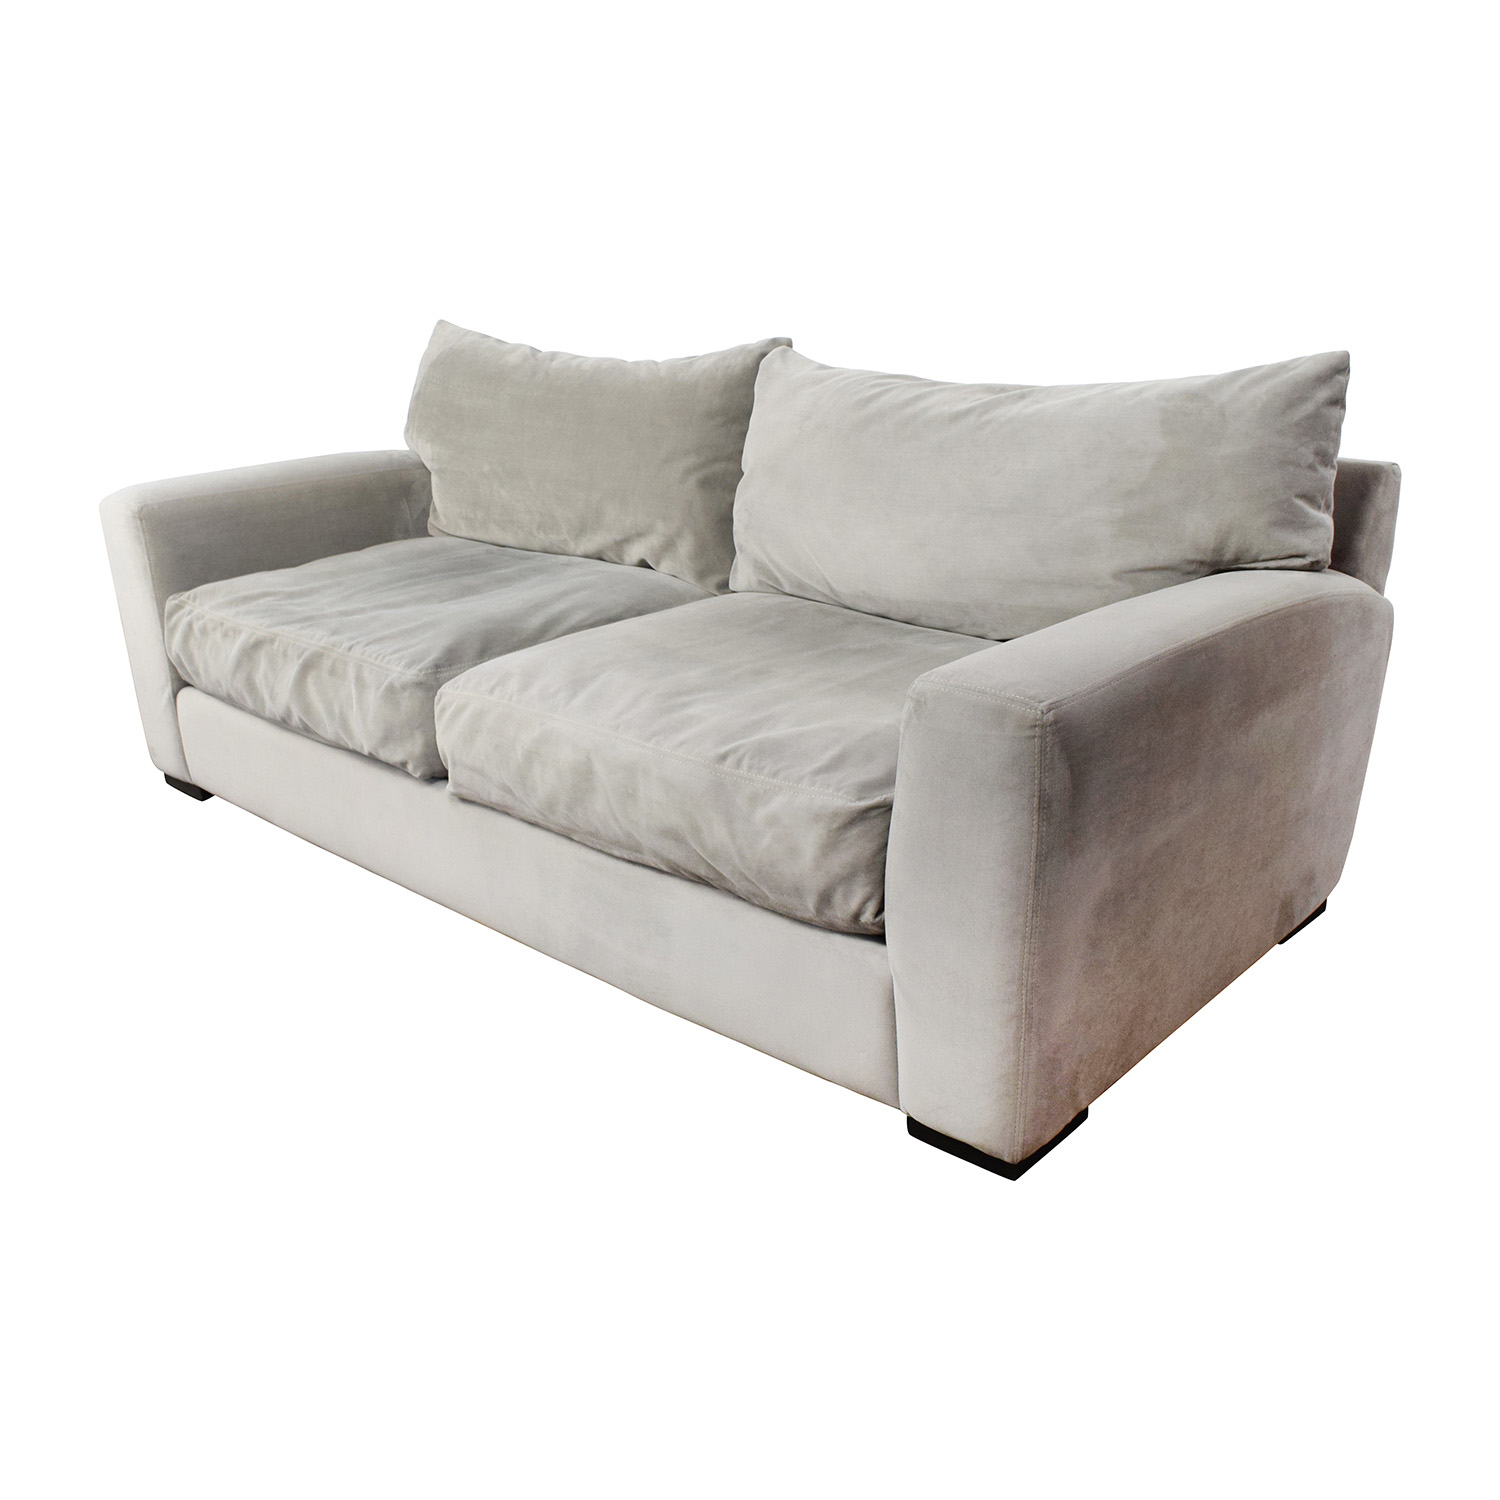 73 off raymour and flanigan raymour flanigan carlin for Raymour flanigan sofa bed